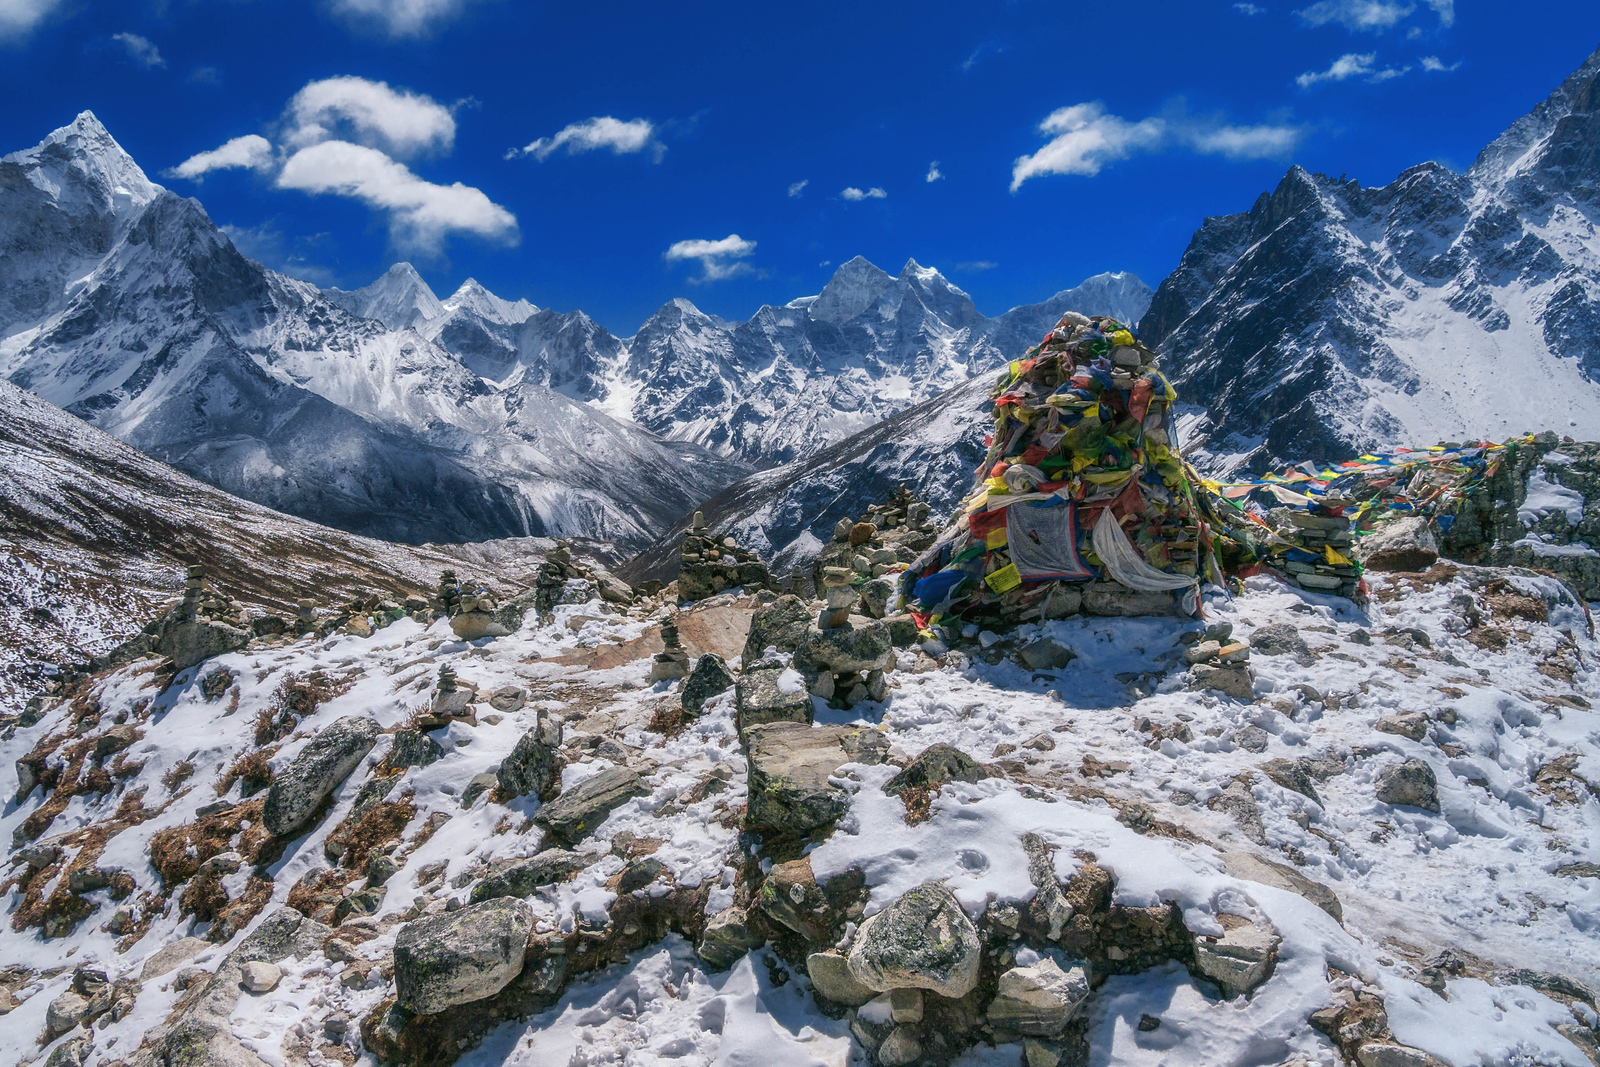 Shrines to fallen Sherpas are littered along the route to Mount Everest Base Camp